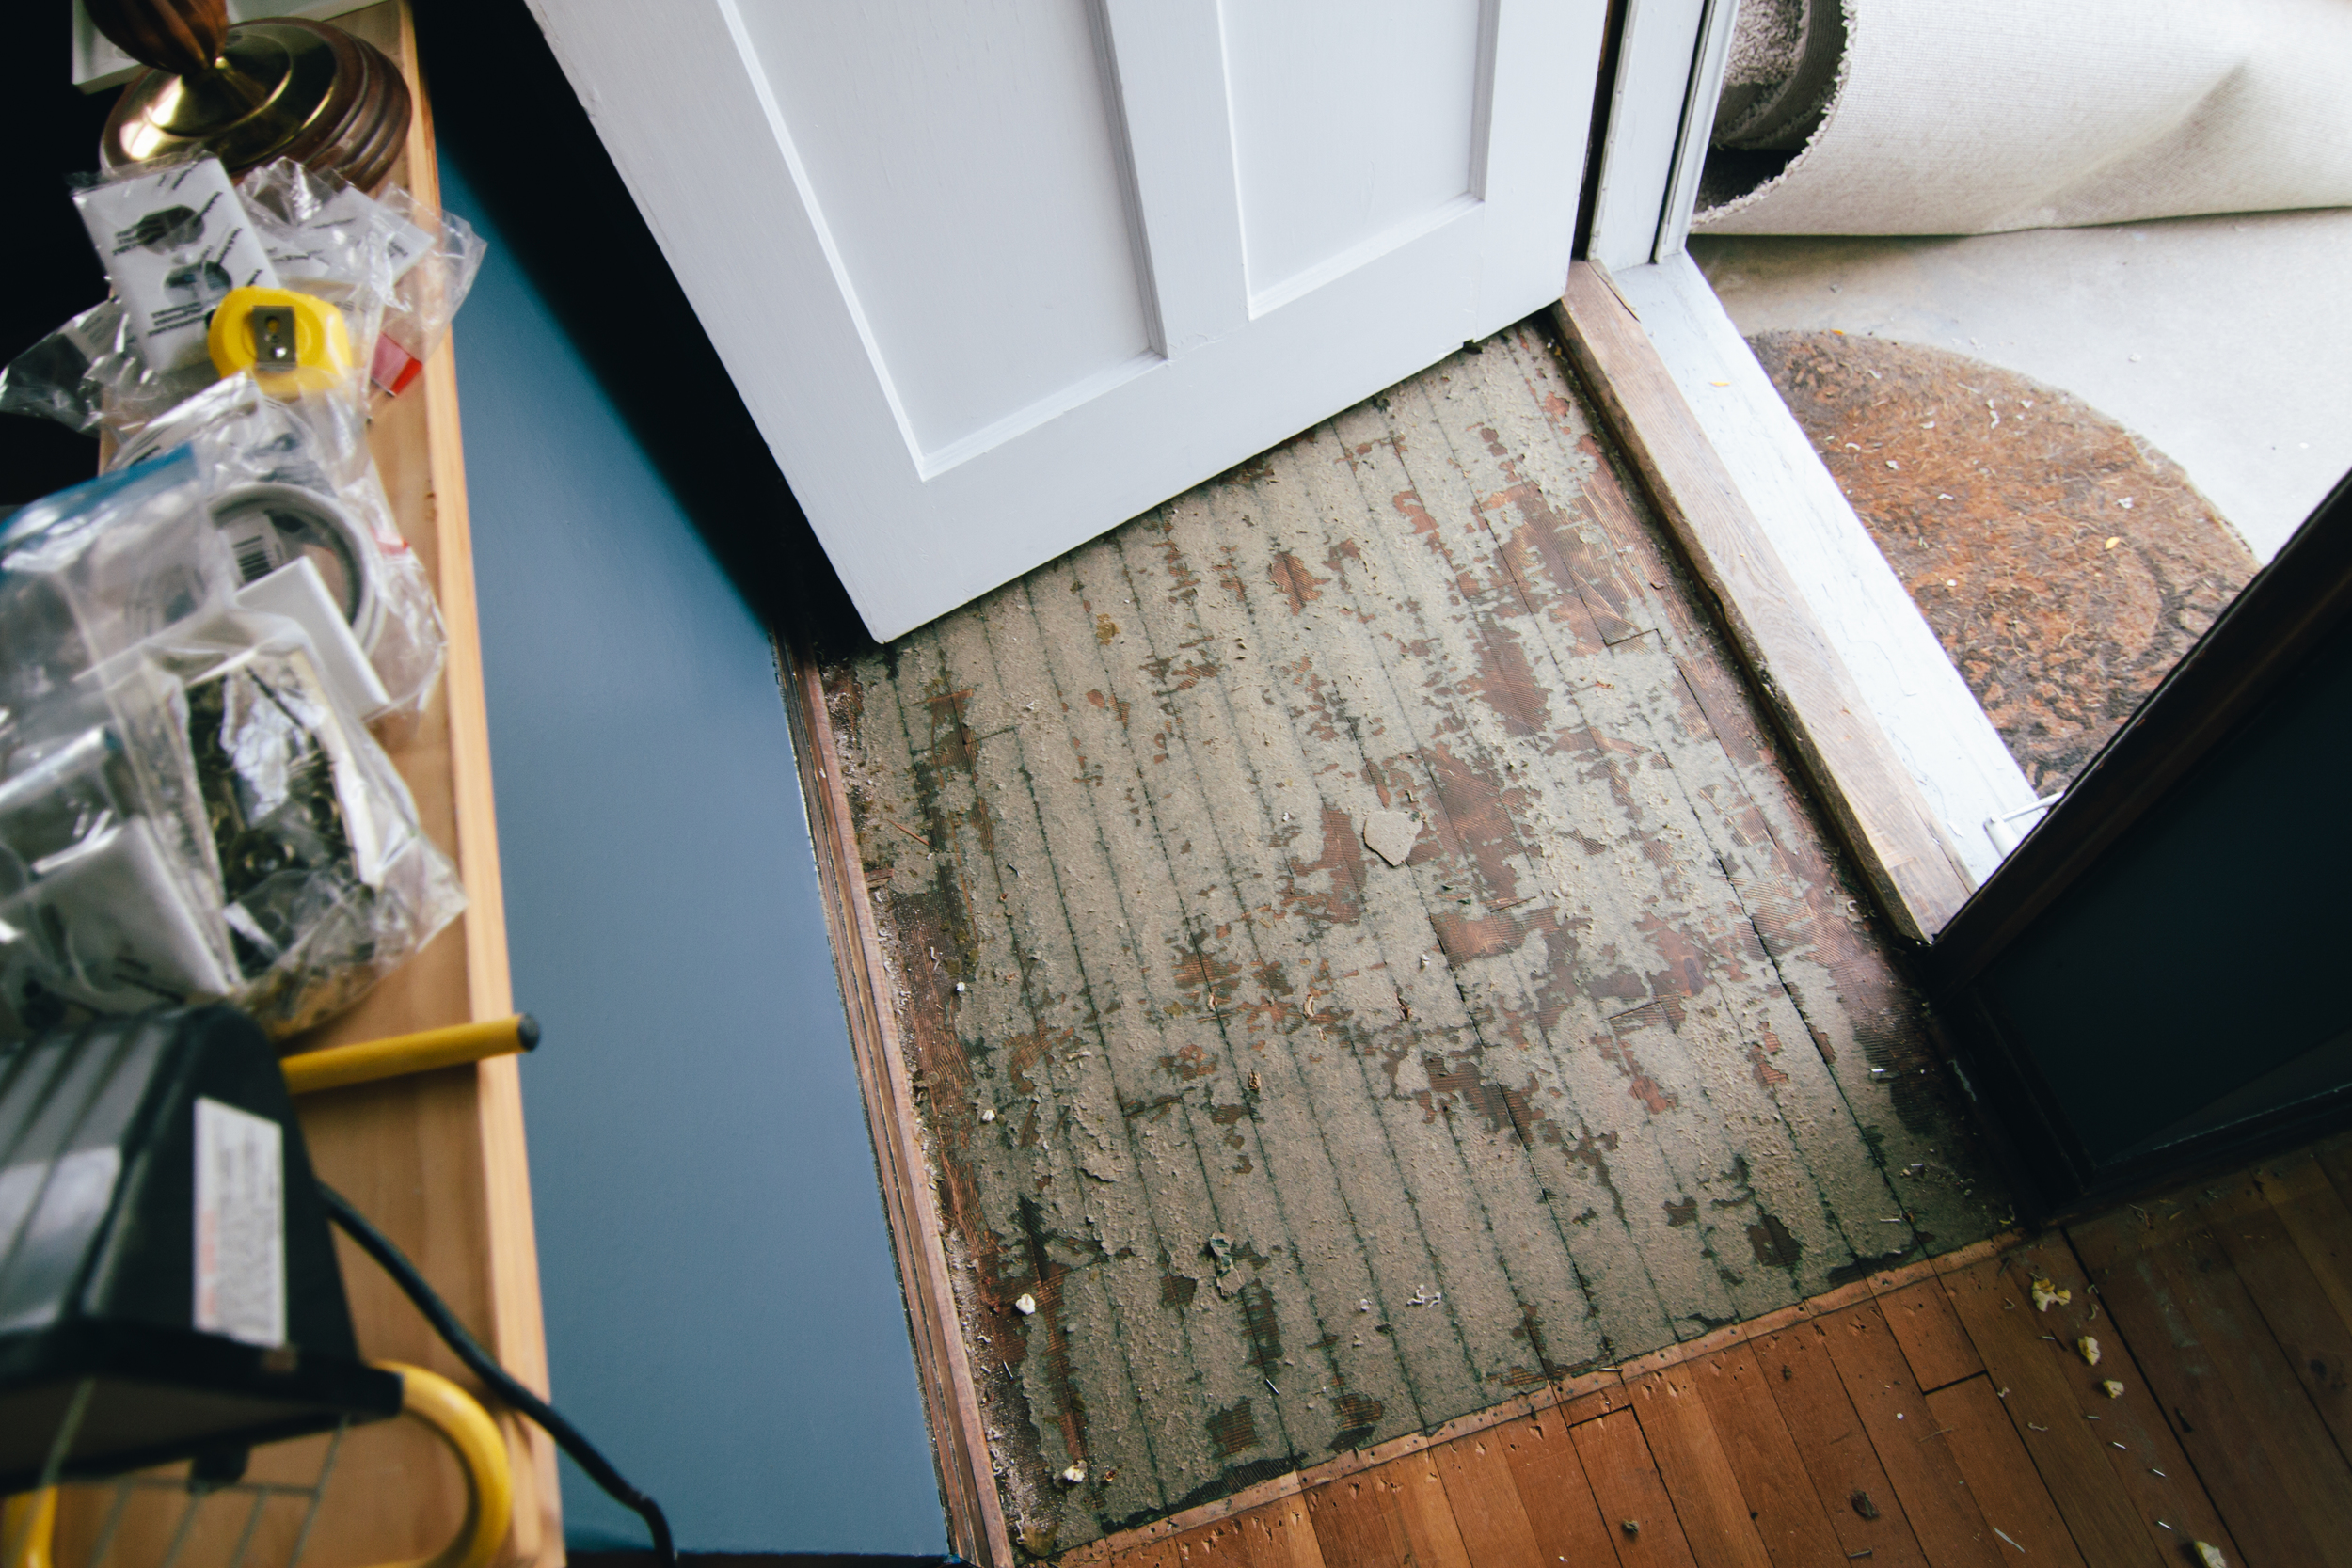 But there was fake brick plaster stuff on the floor next to the front door.